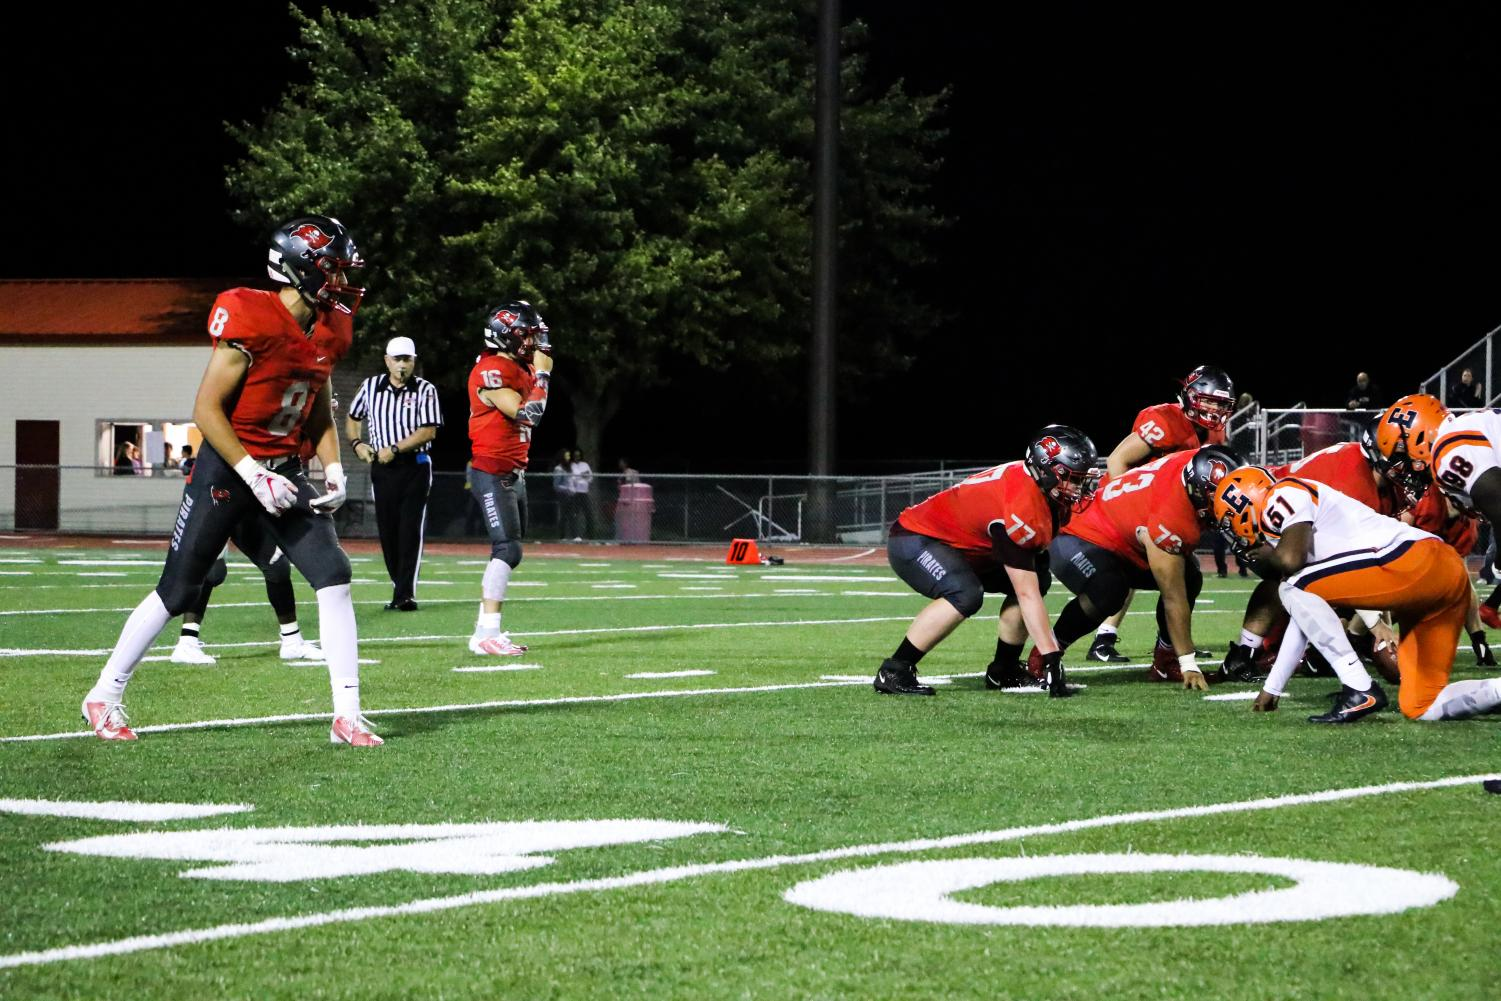 Pirates offense fires on all cylinders in victory over Evanston.